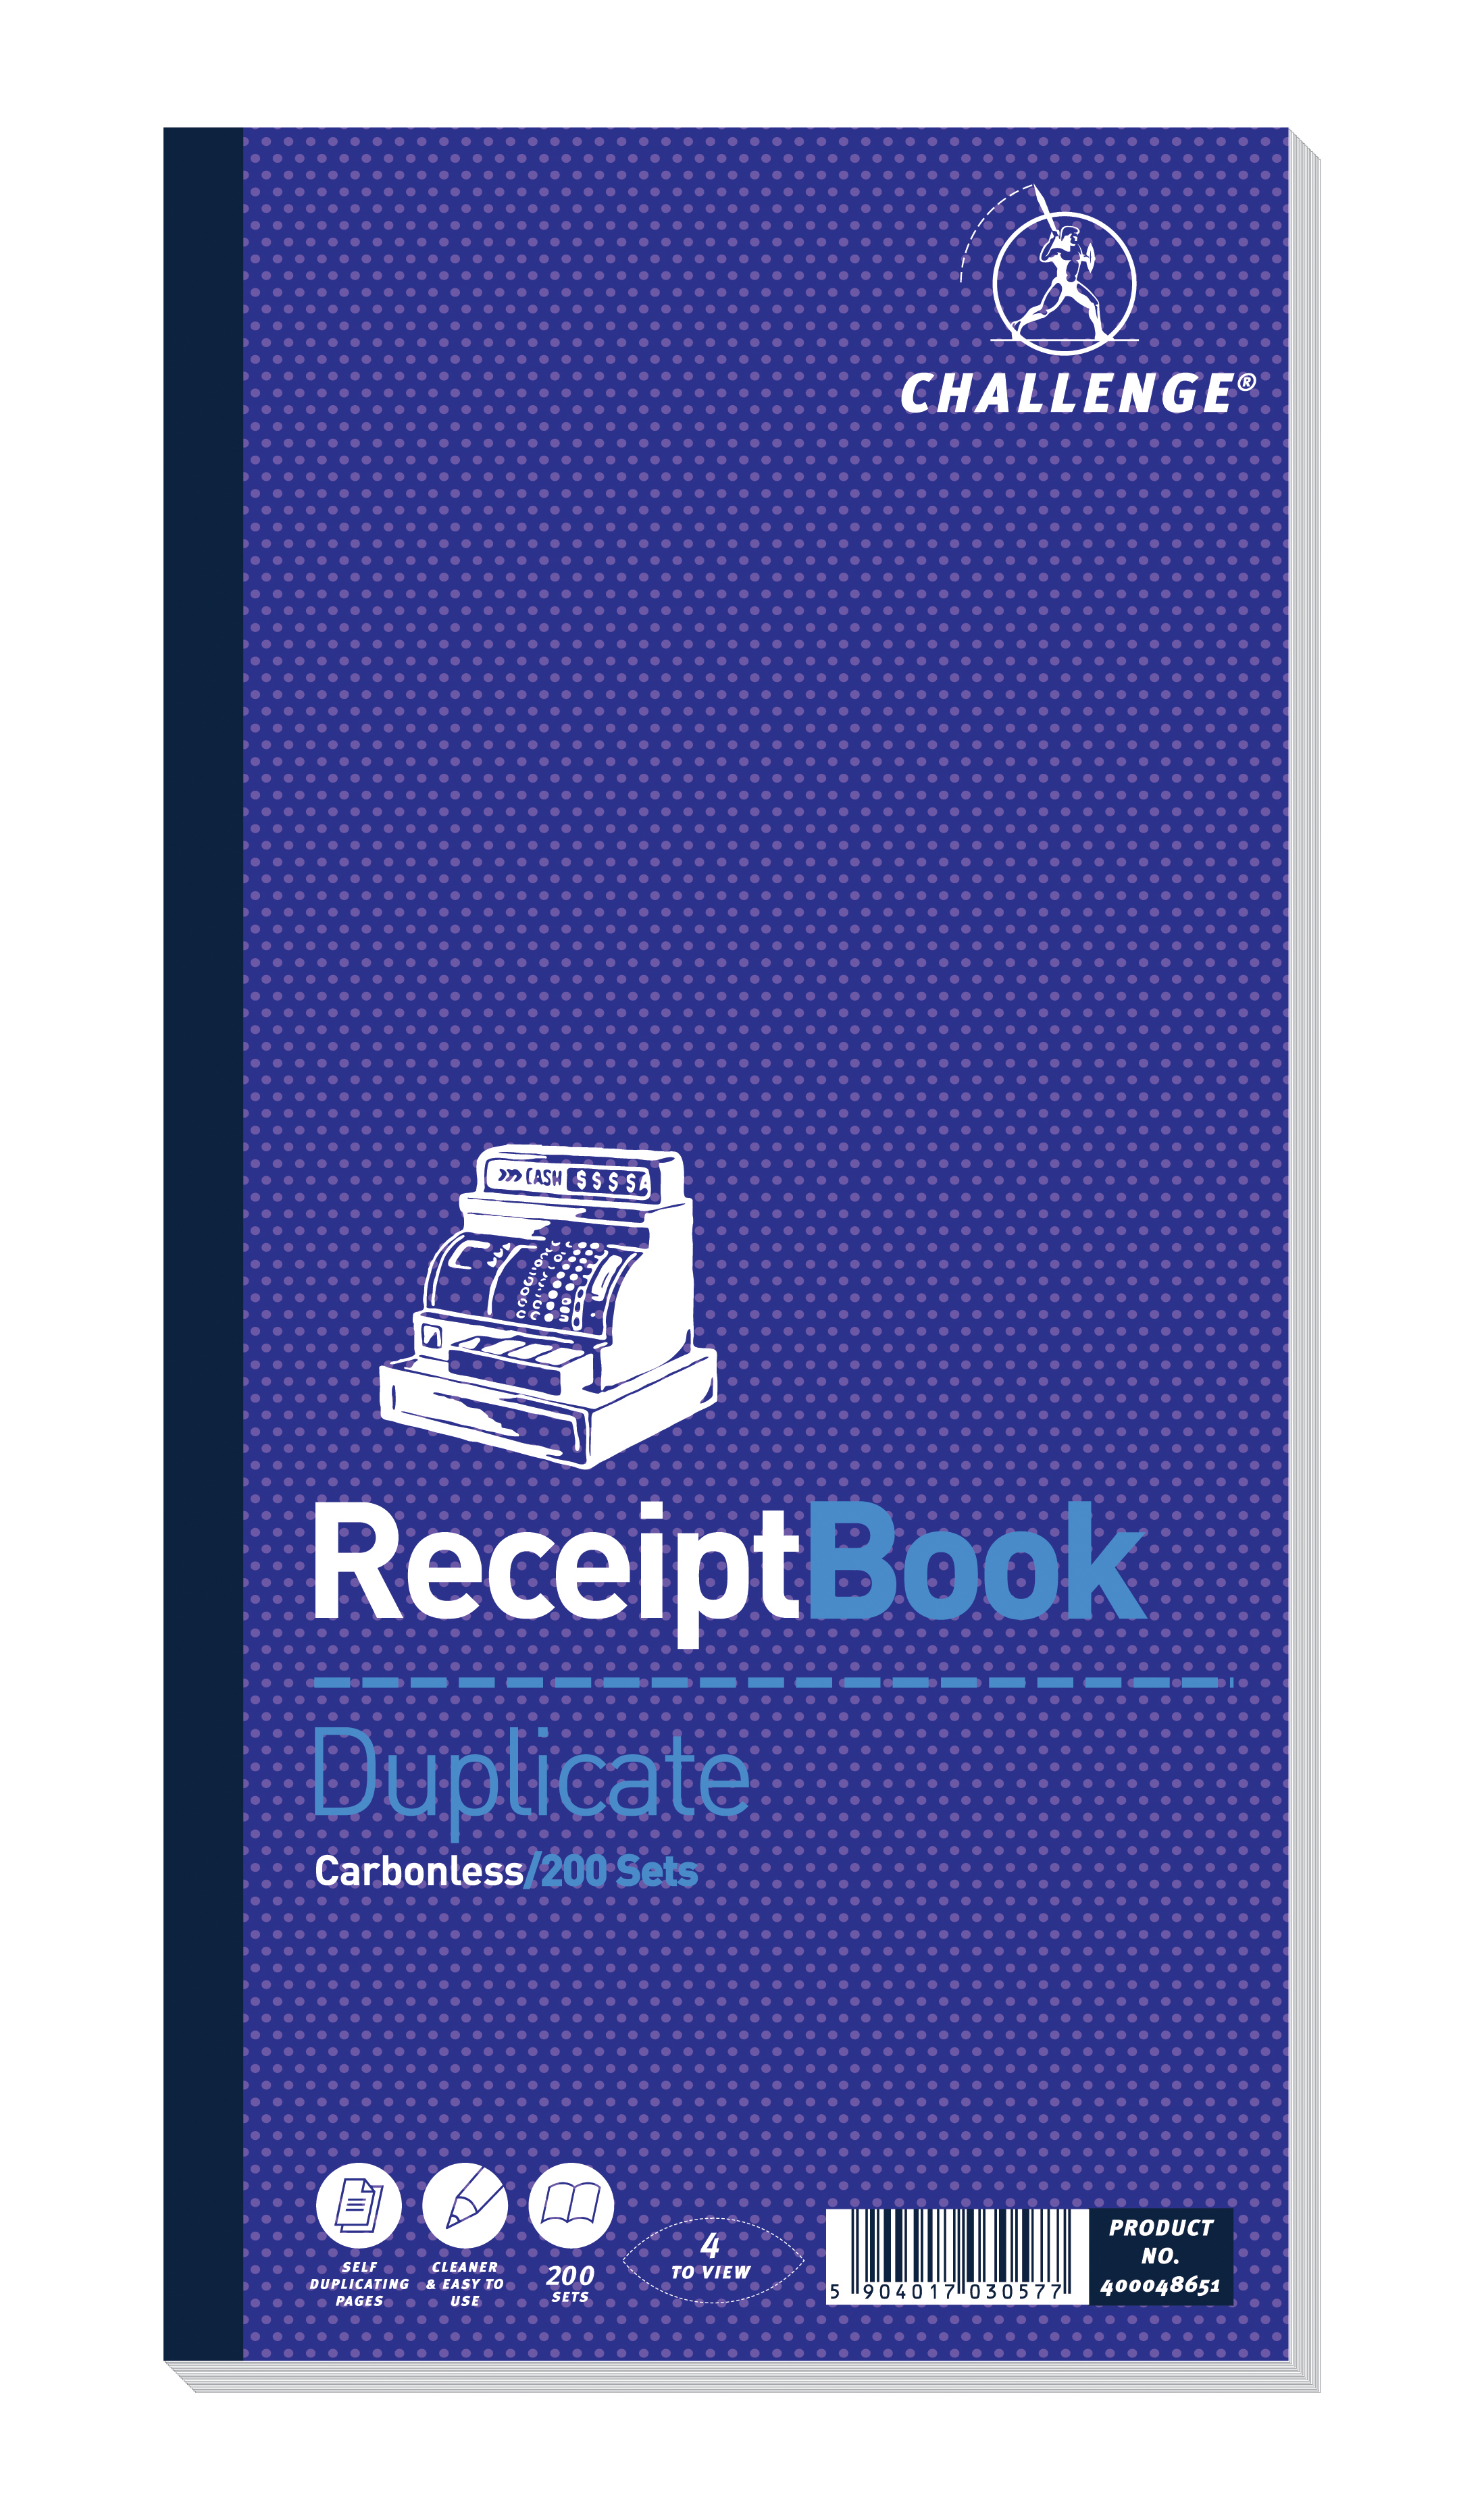 Image for Challenge Duplicate Book Carbonless 4 Sets per Page 200 Receipts 240x141mm Ref 400048651